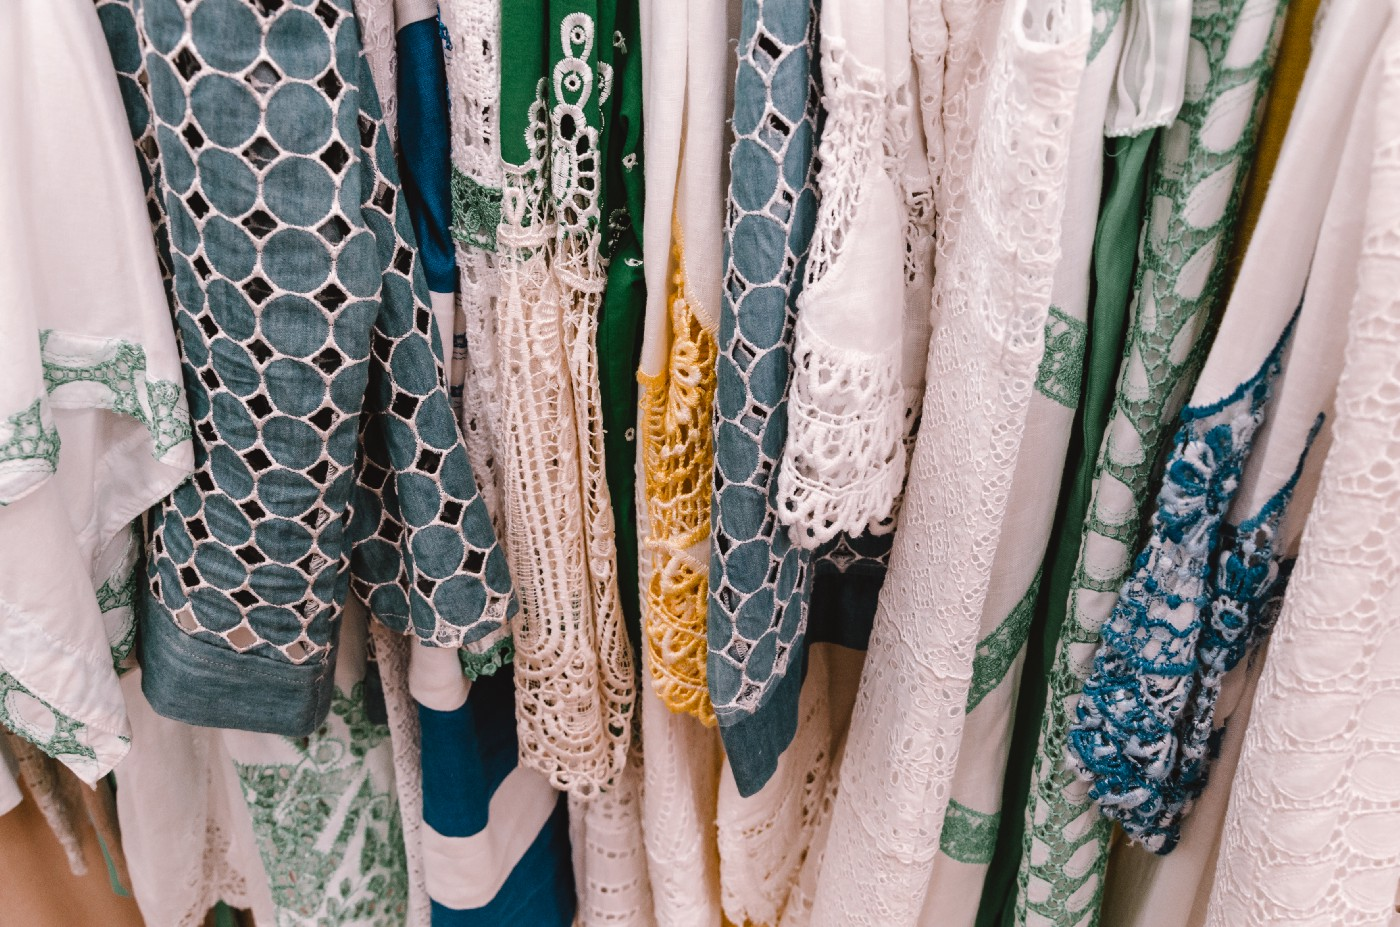 A selection of lacy, loose, and white garments with cool-colored accents and patterns on a rack